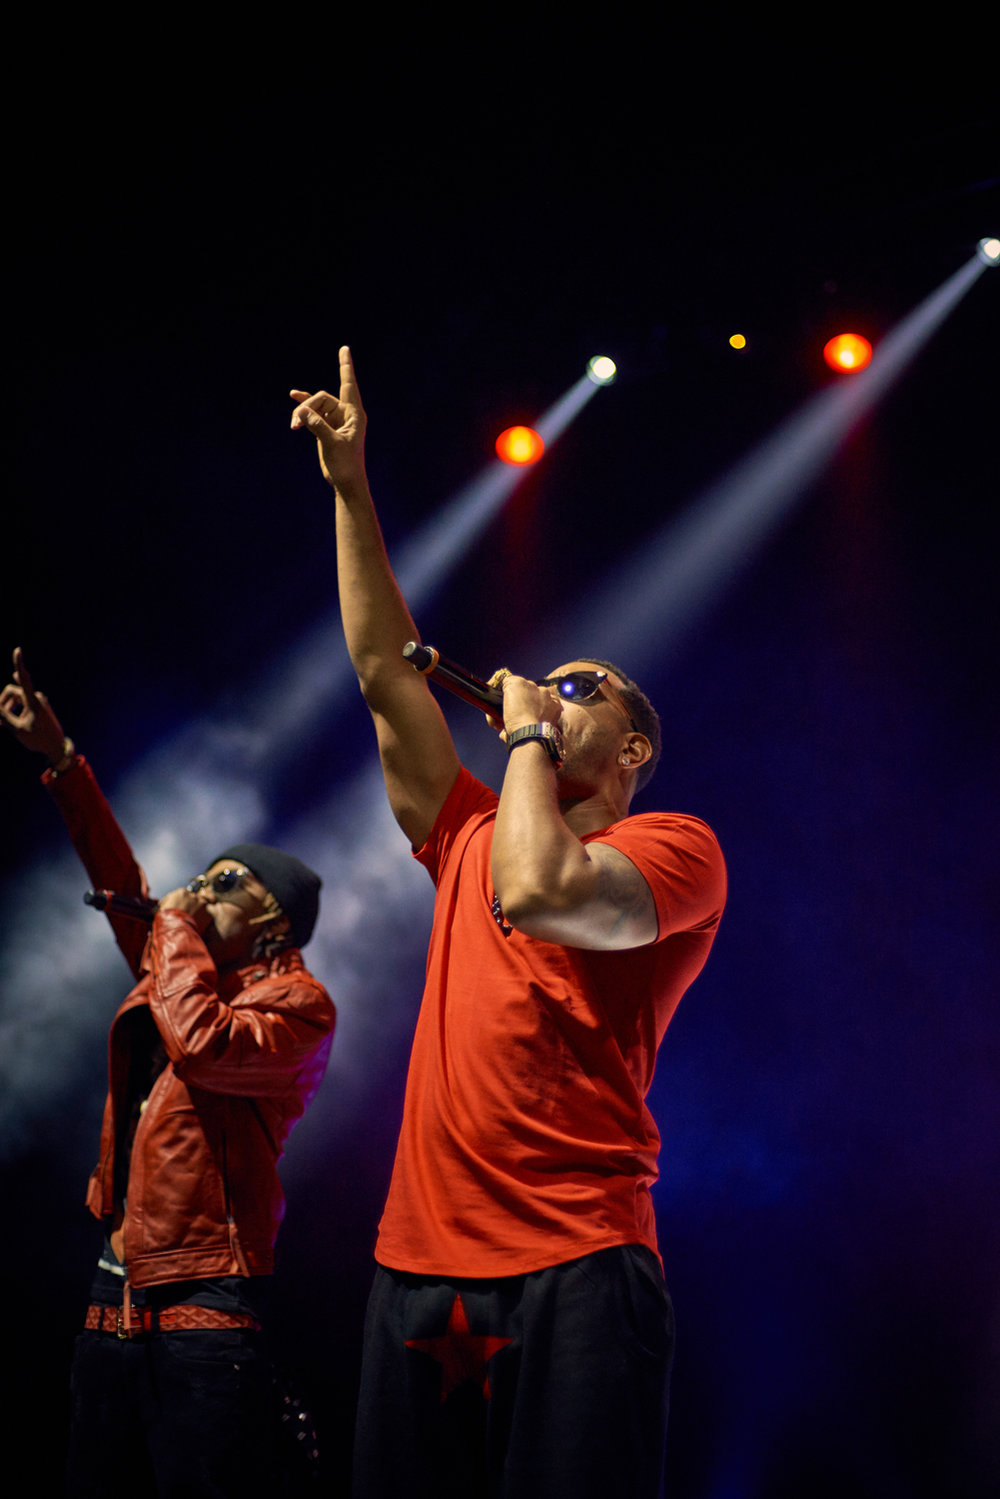 LLL_3106_Ludacris-Live-at-Eventim-Apollo-March-2017.jpg